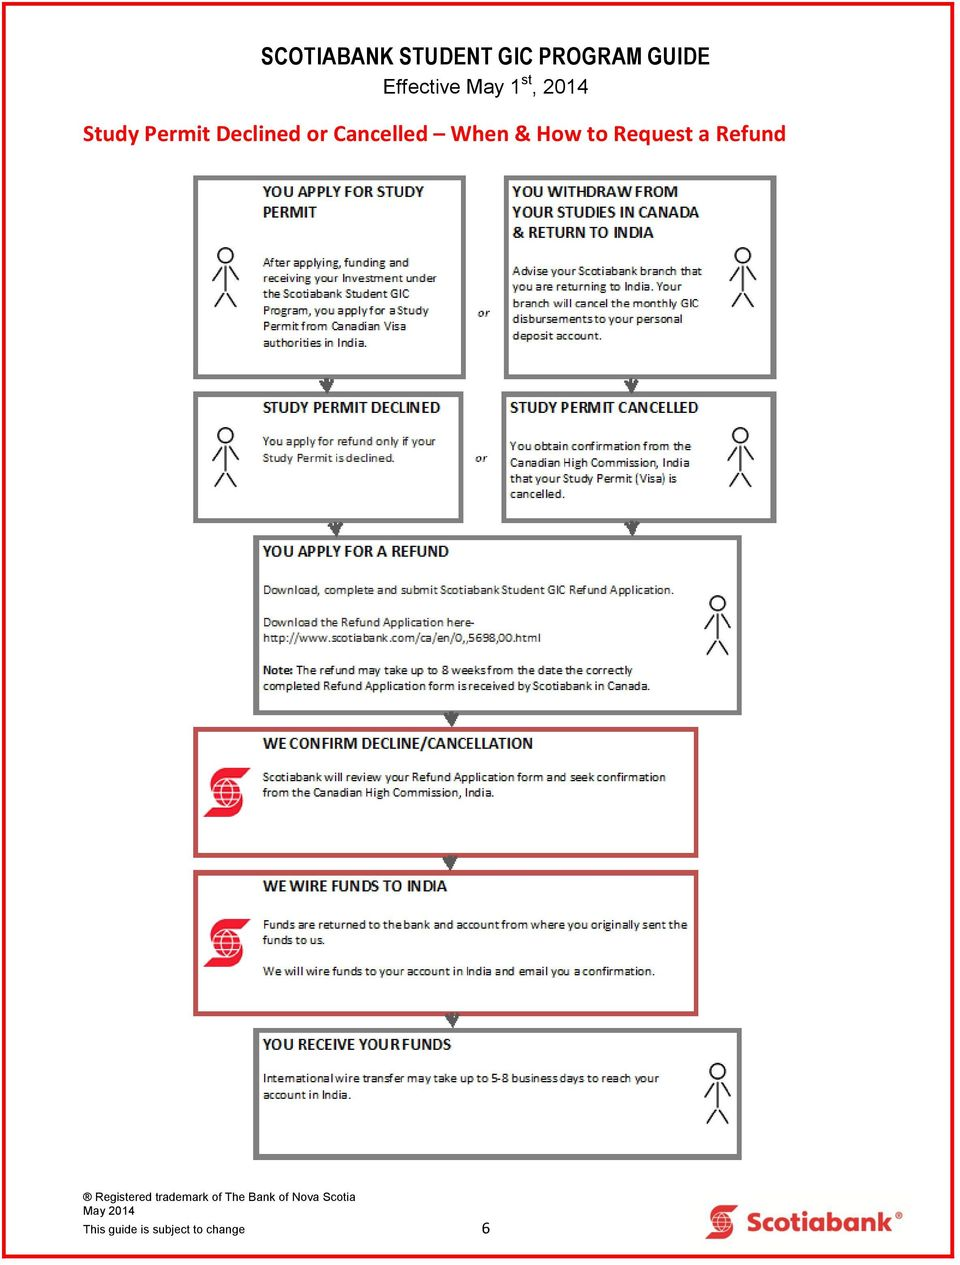 Scotiabank International Wire Transfer | Scotiabank Student Gic Program Guide I How Does The Scotiabank